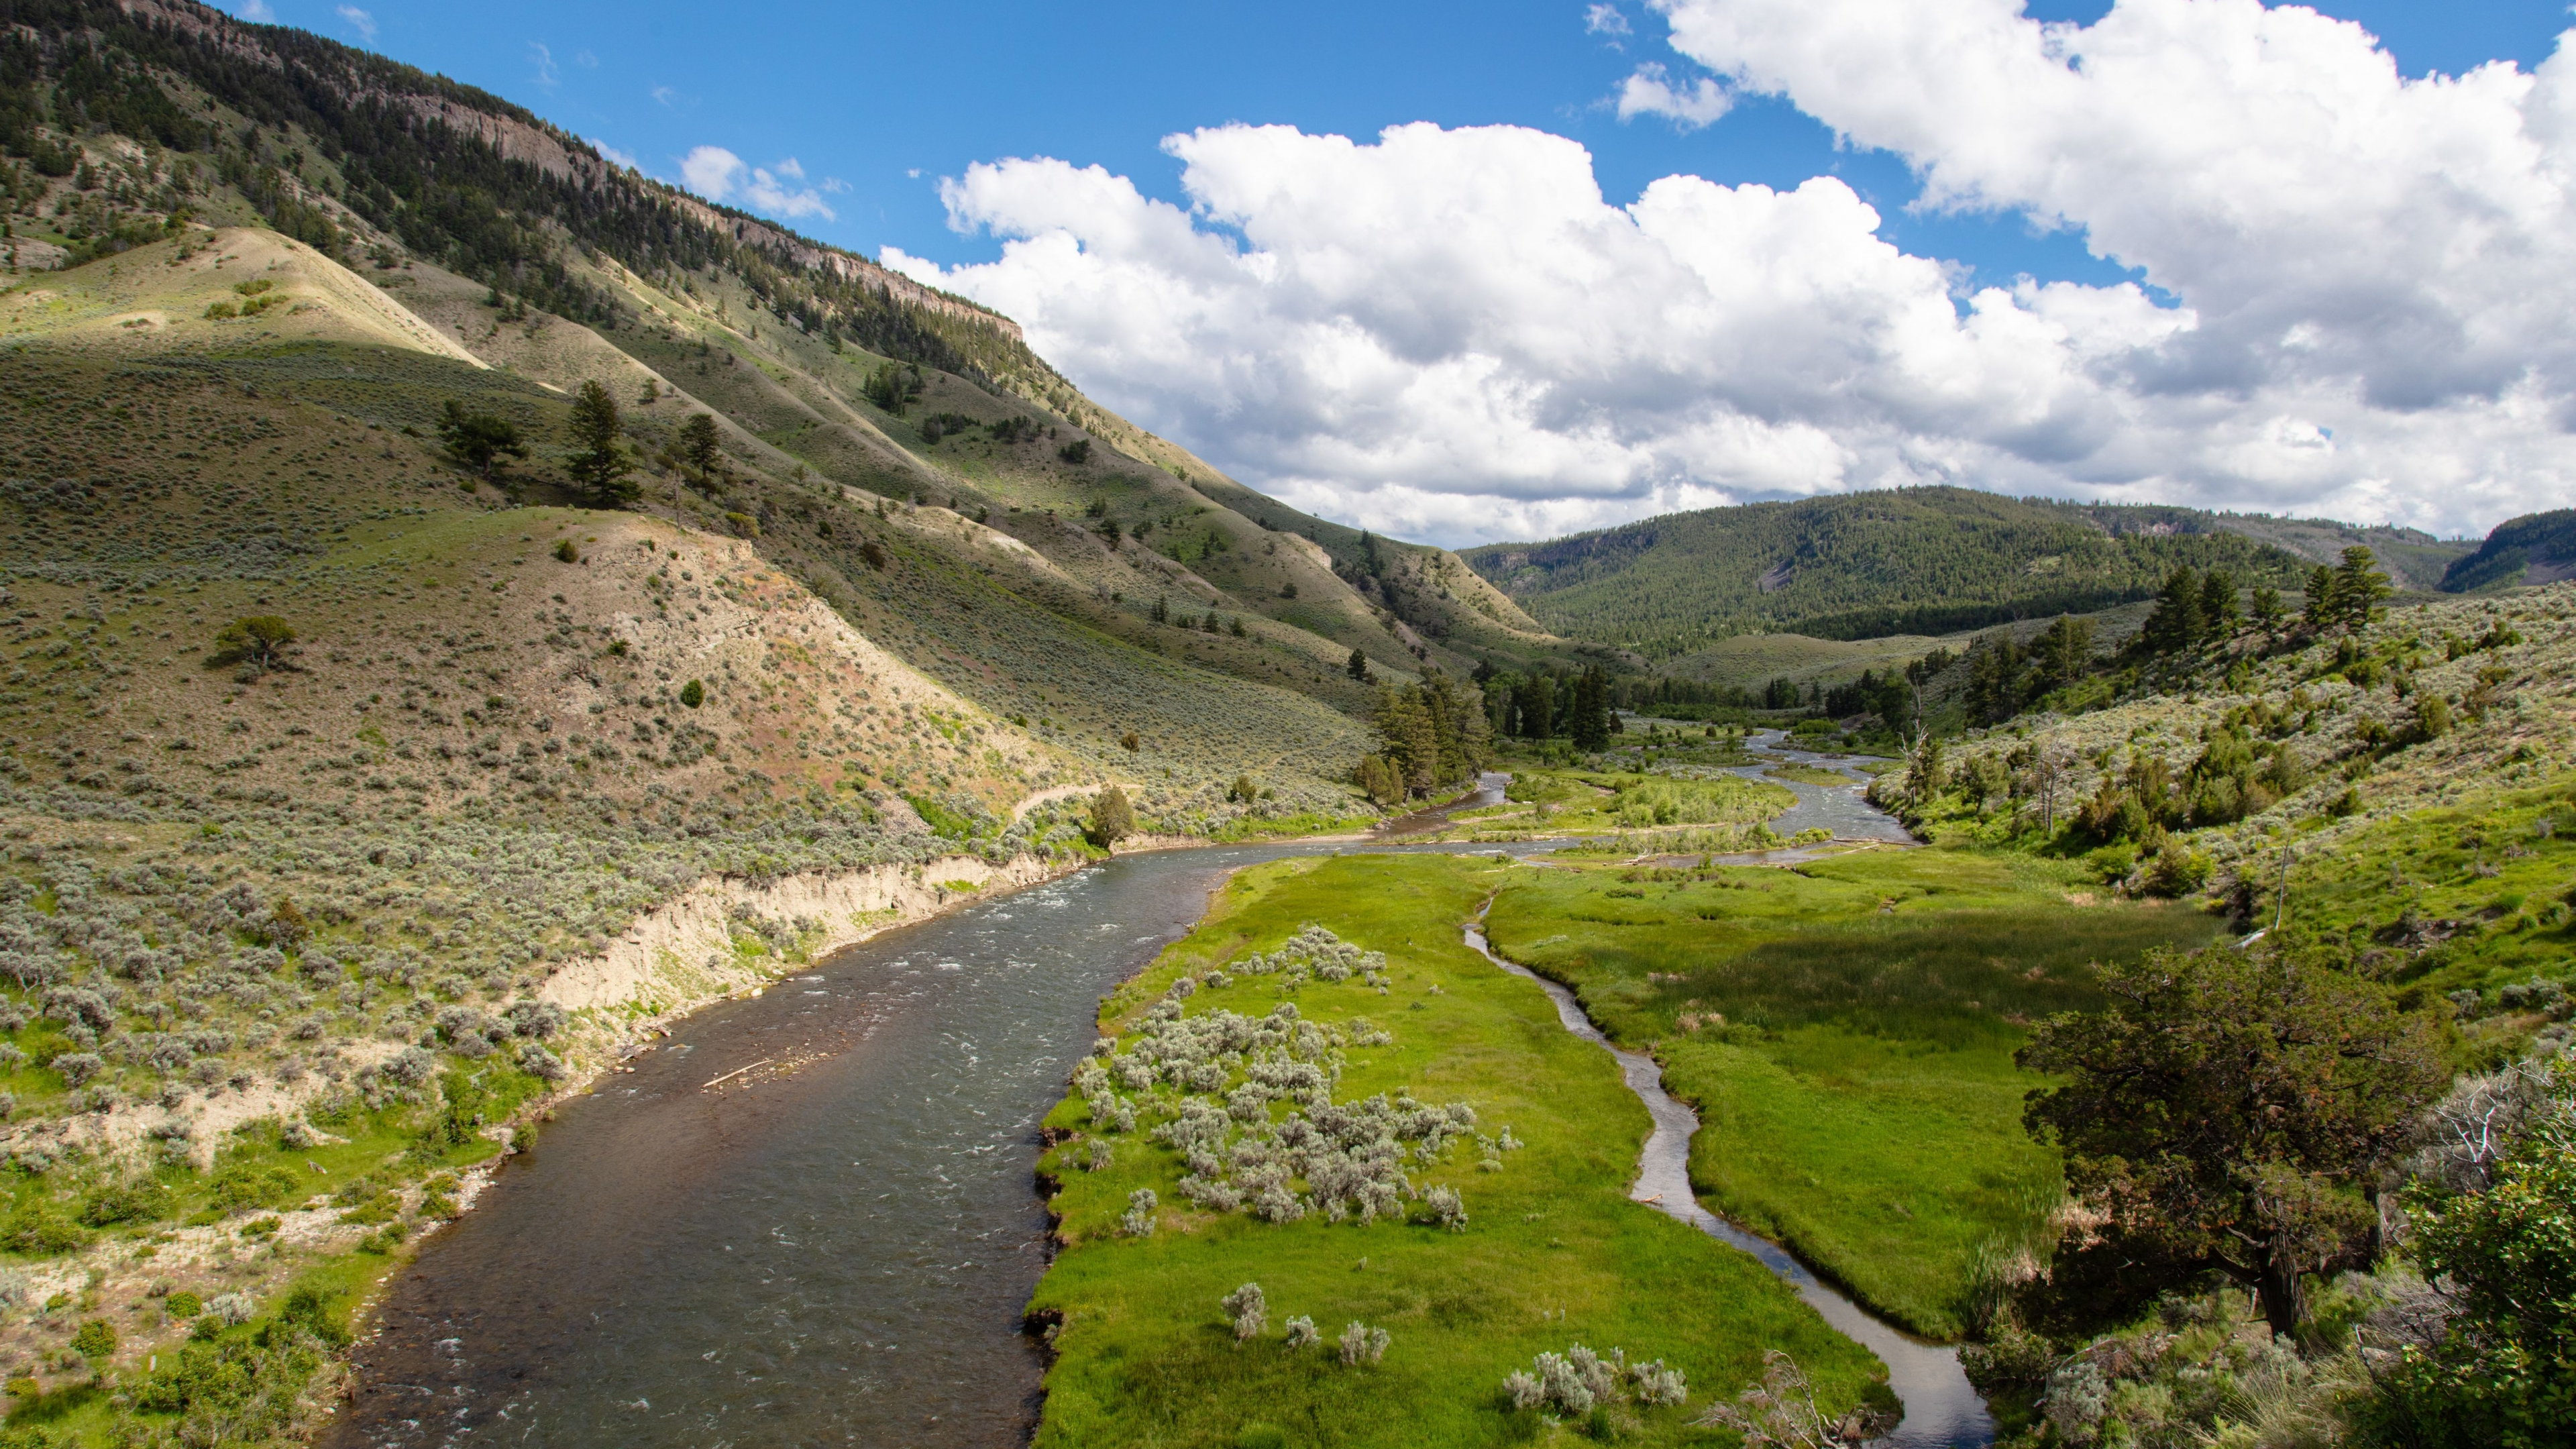 View of the Gardner River from Lava Creek Trail at Yellowstone National Park